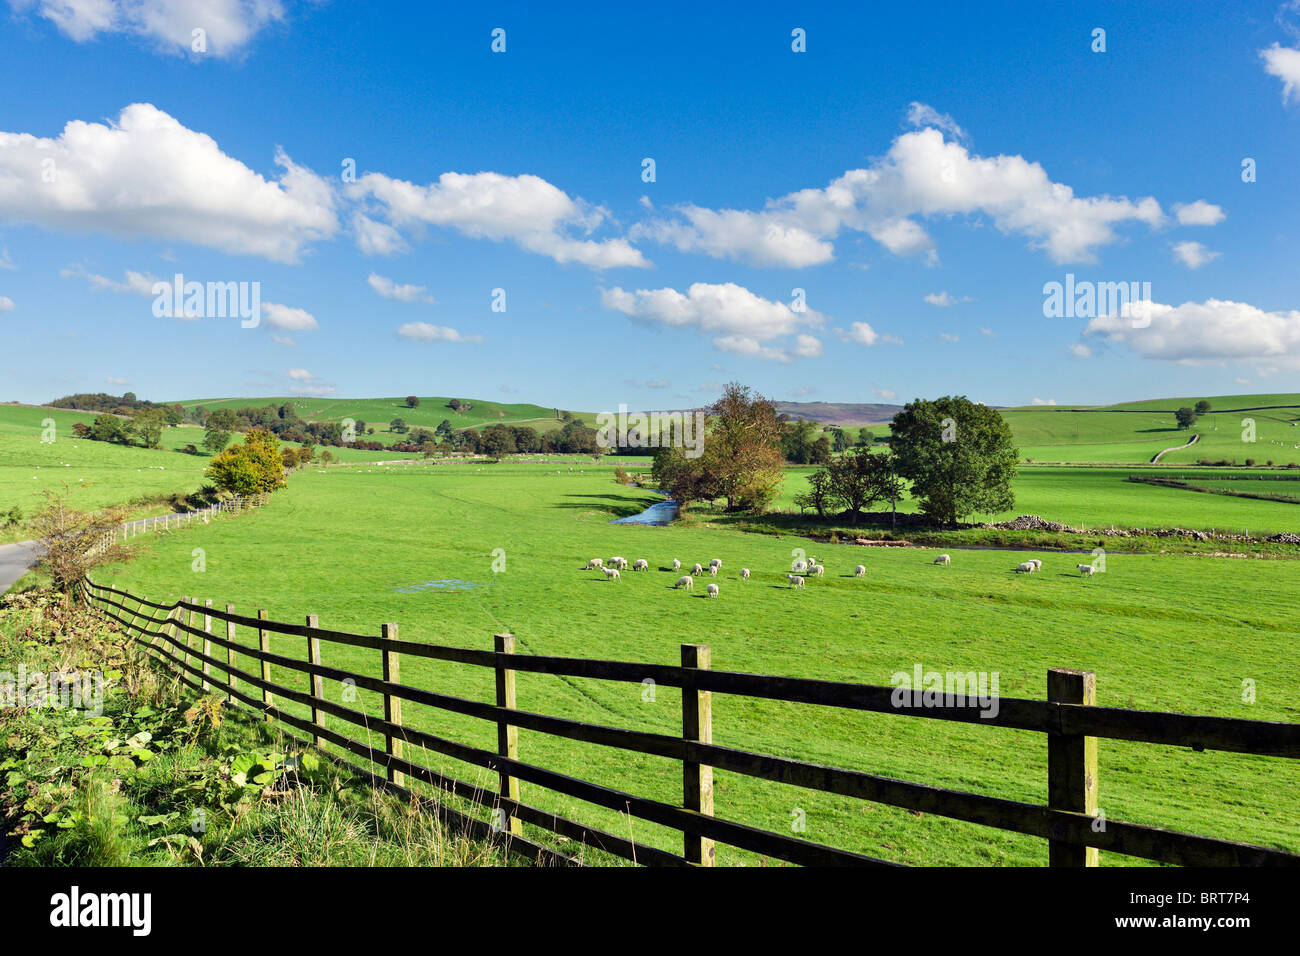 Countryside between Airton and Hetton, Wharfedale, Yorkshire Dales National Park, England, UK - Stock Image